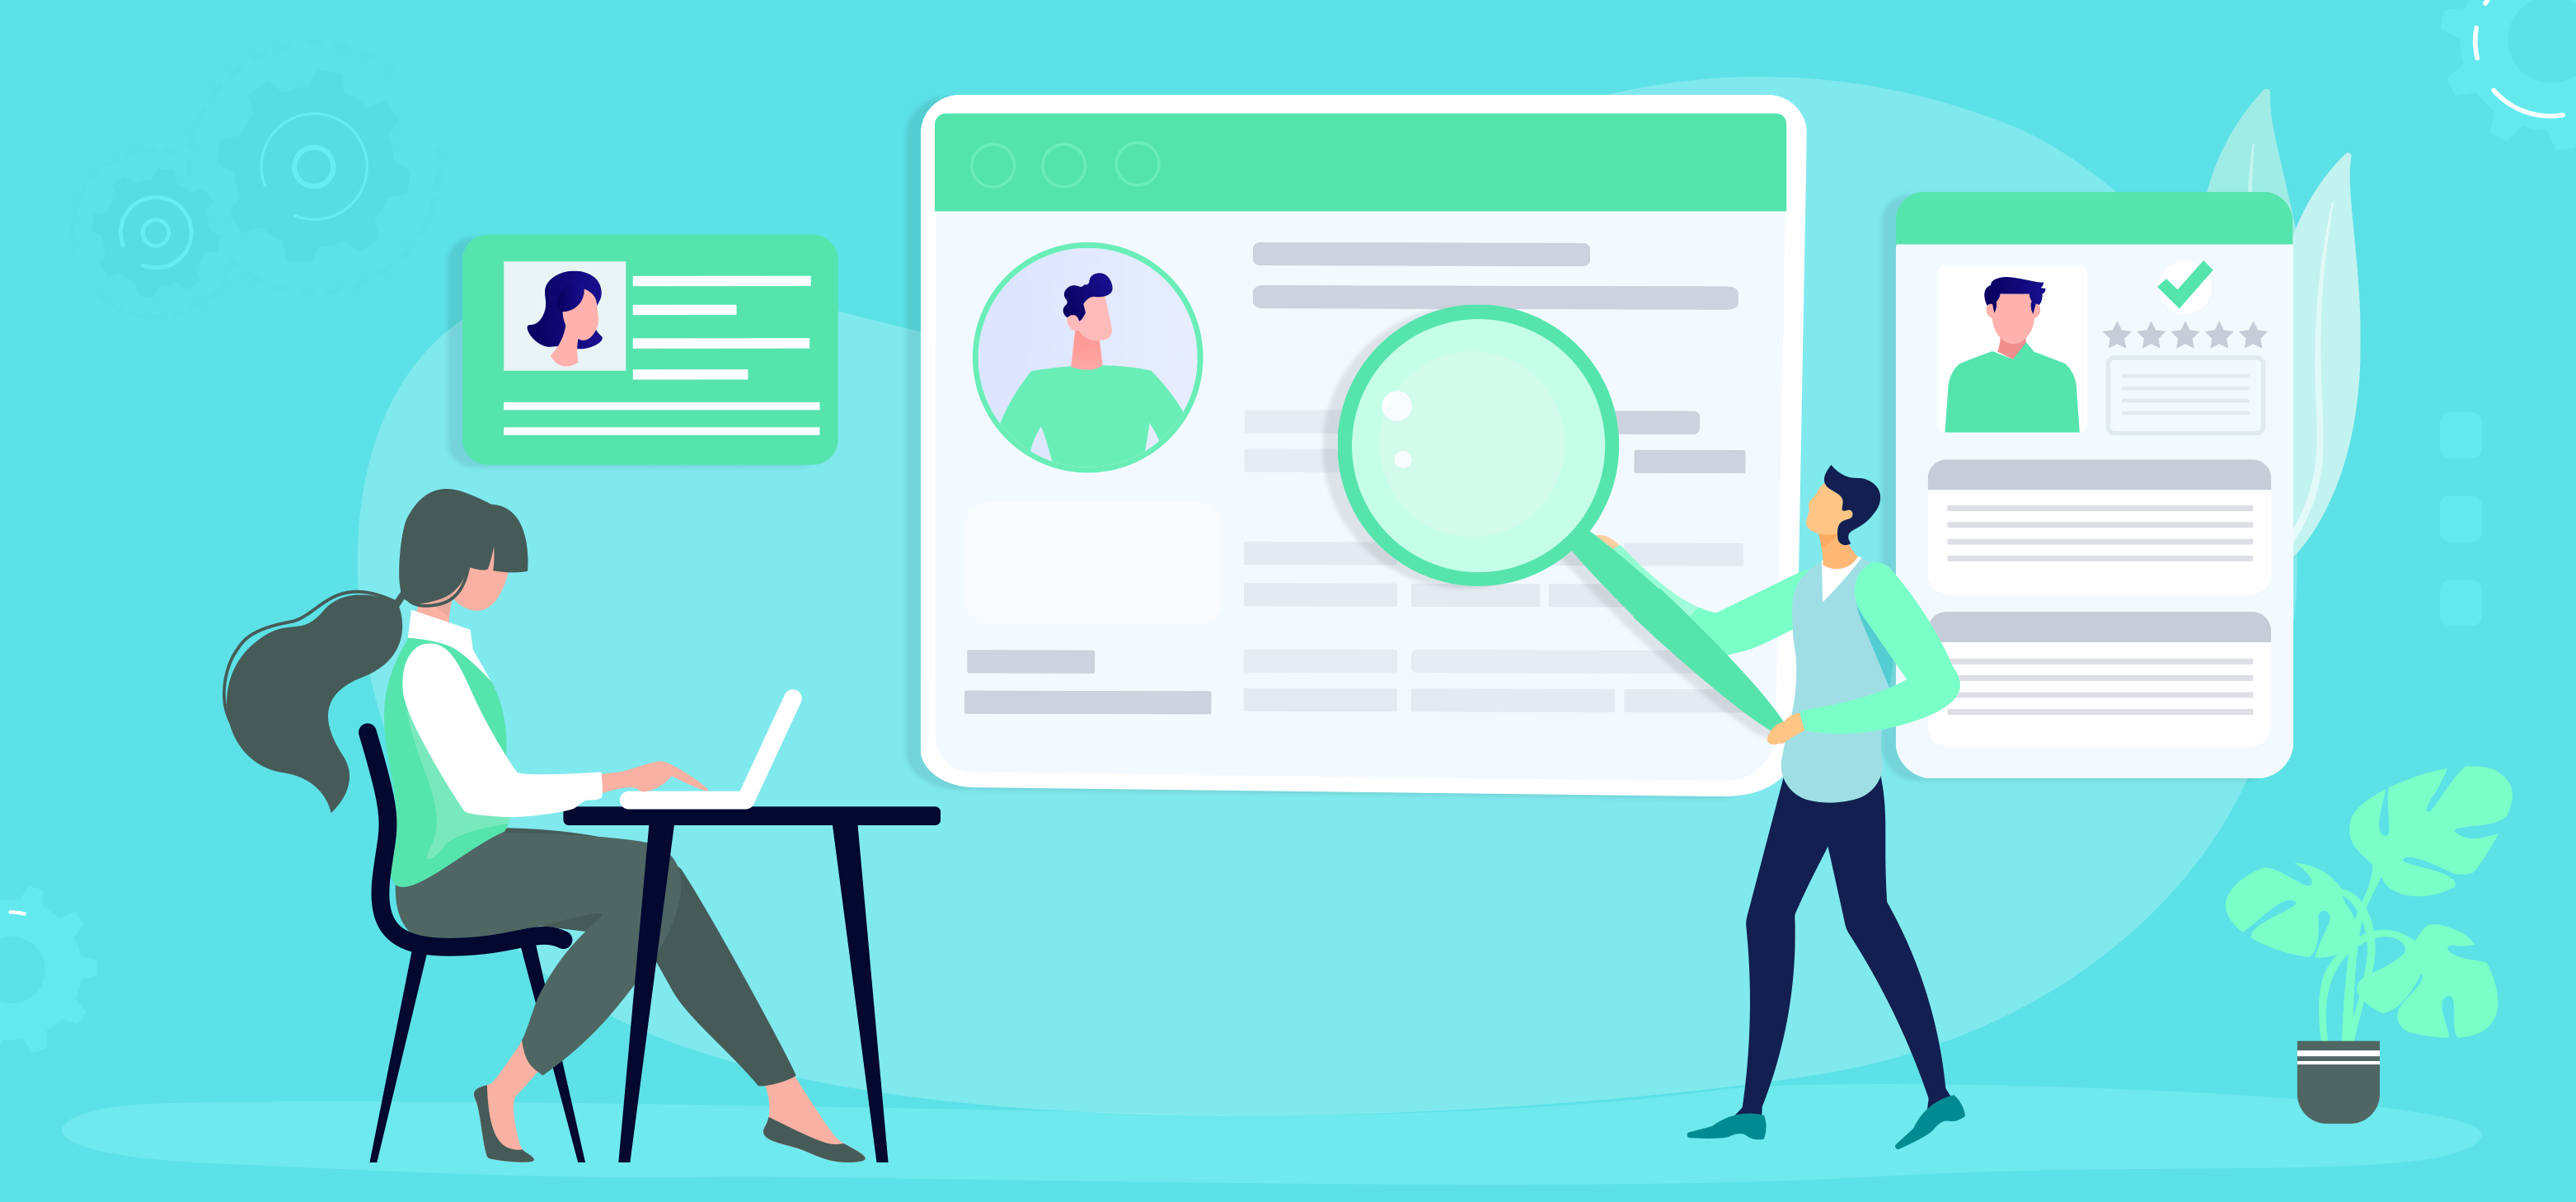 10 Best Recruiting Softwares for Small Businesses in 2021